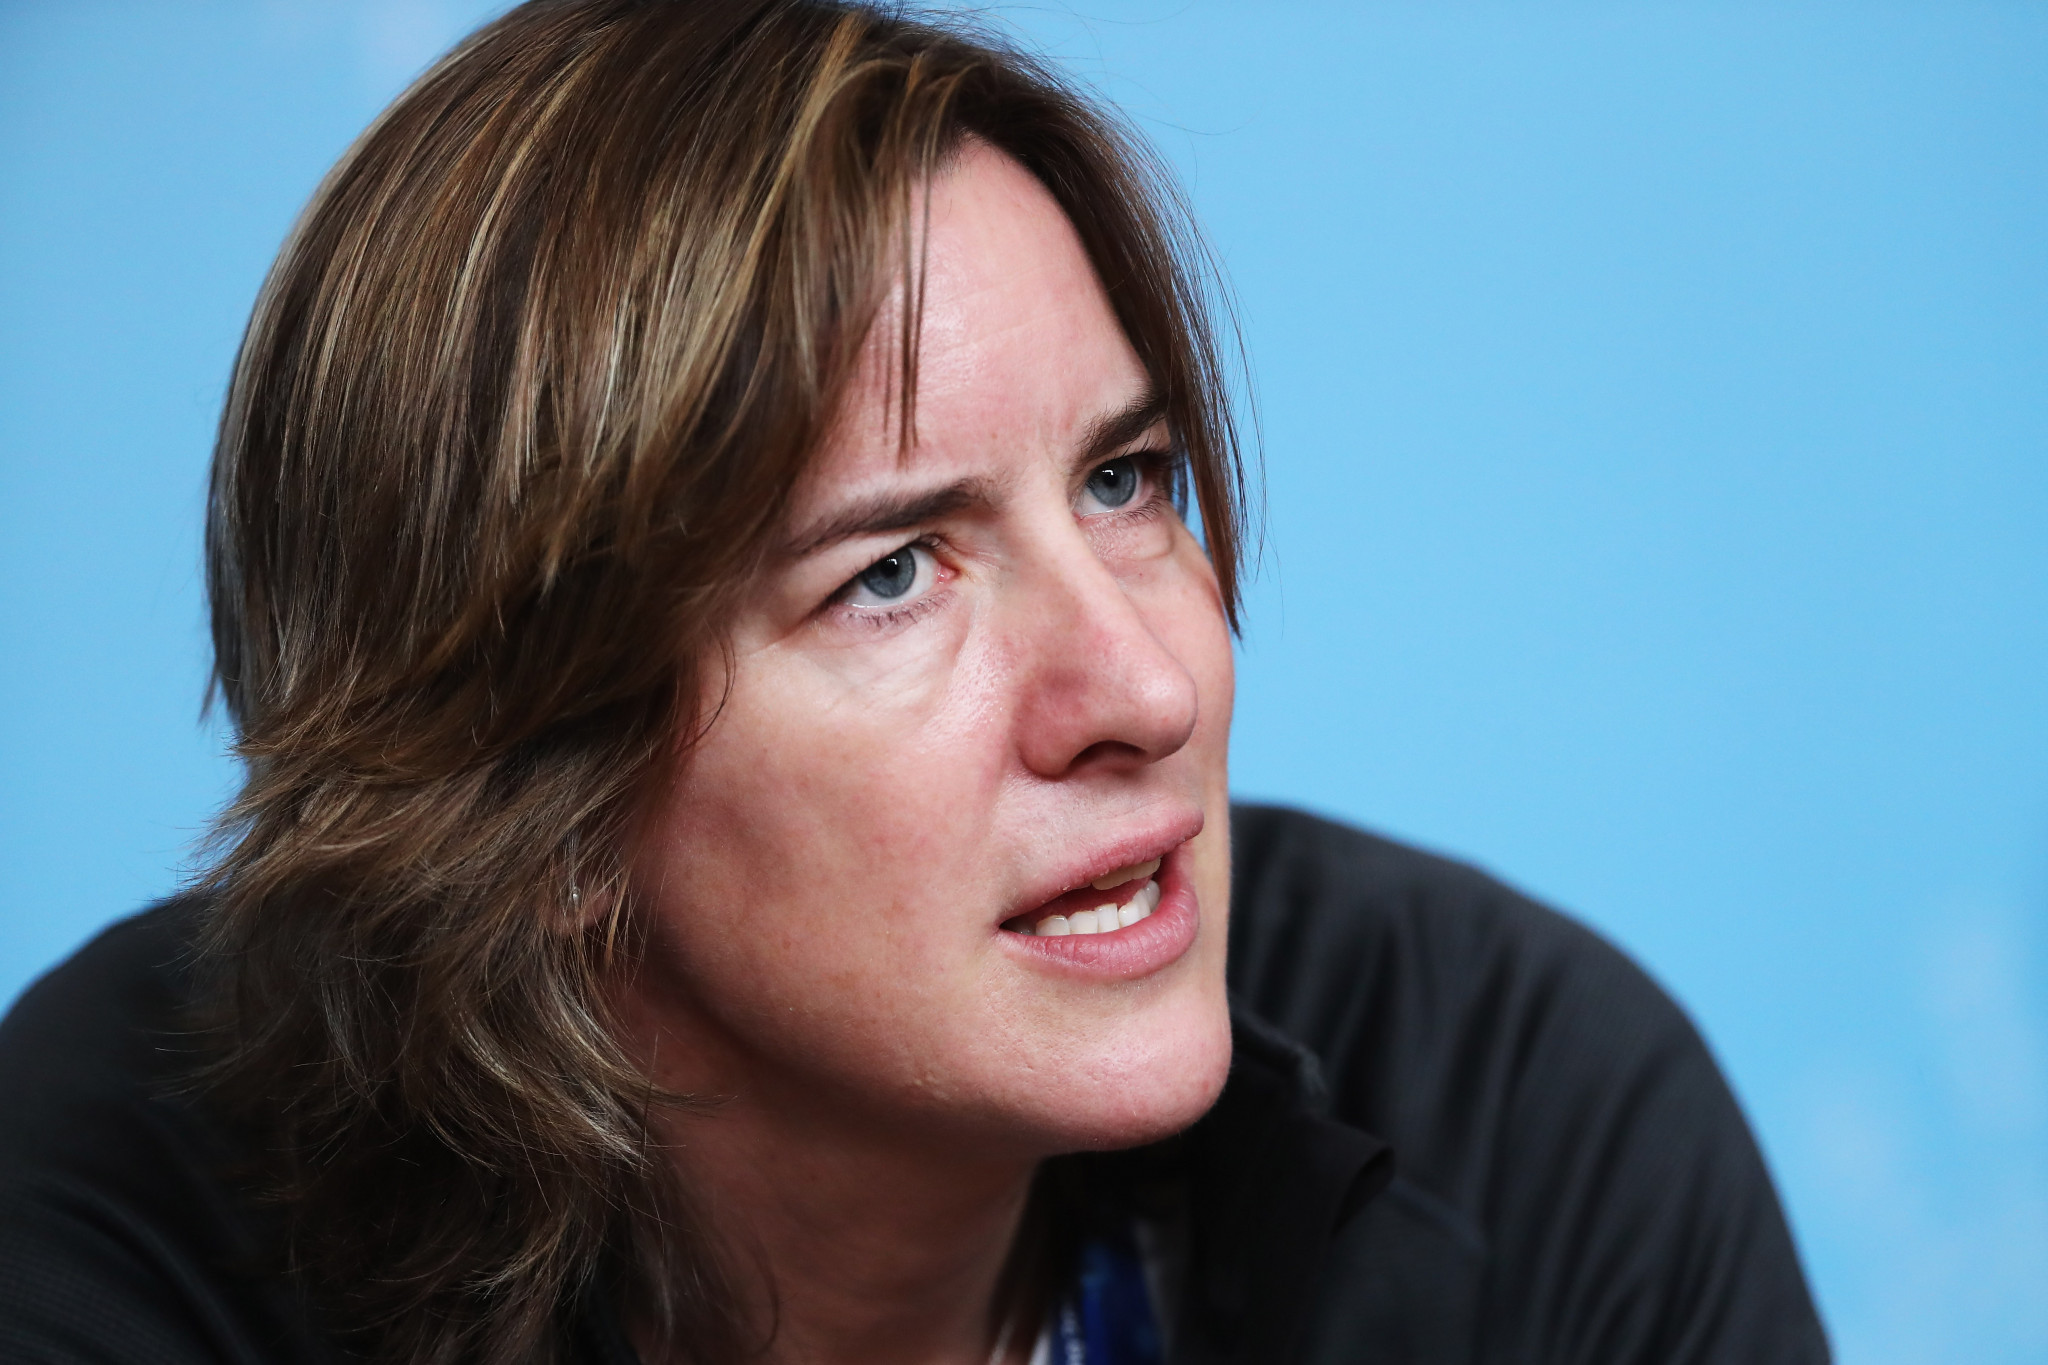 UK Sport chair and four-time Olympic rowing medallist Katherine Grainger spoke at the gender equality breakfast ©Getty Images